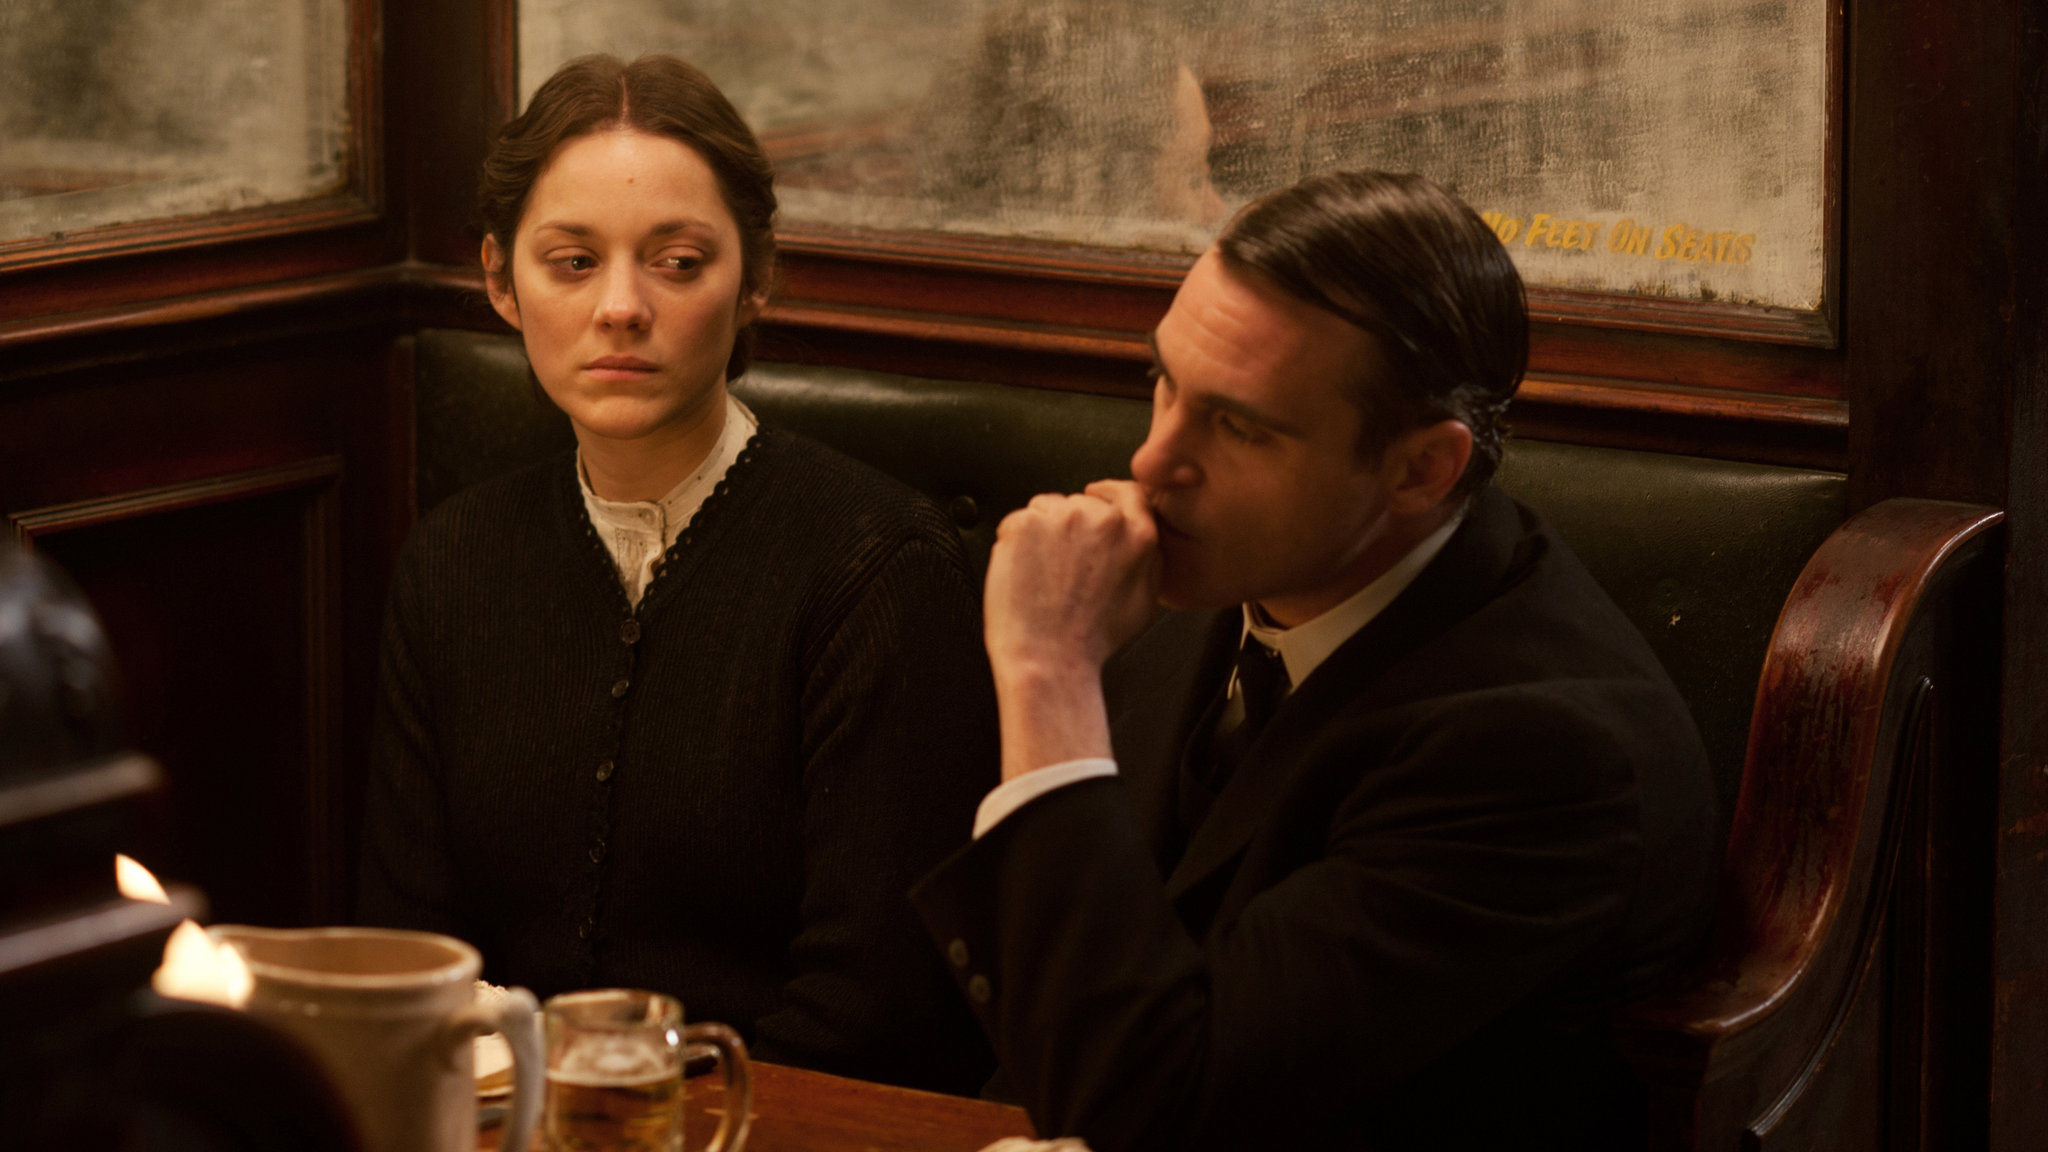 Cannes Film Festival 2013: The Immigrant Review